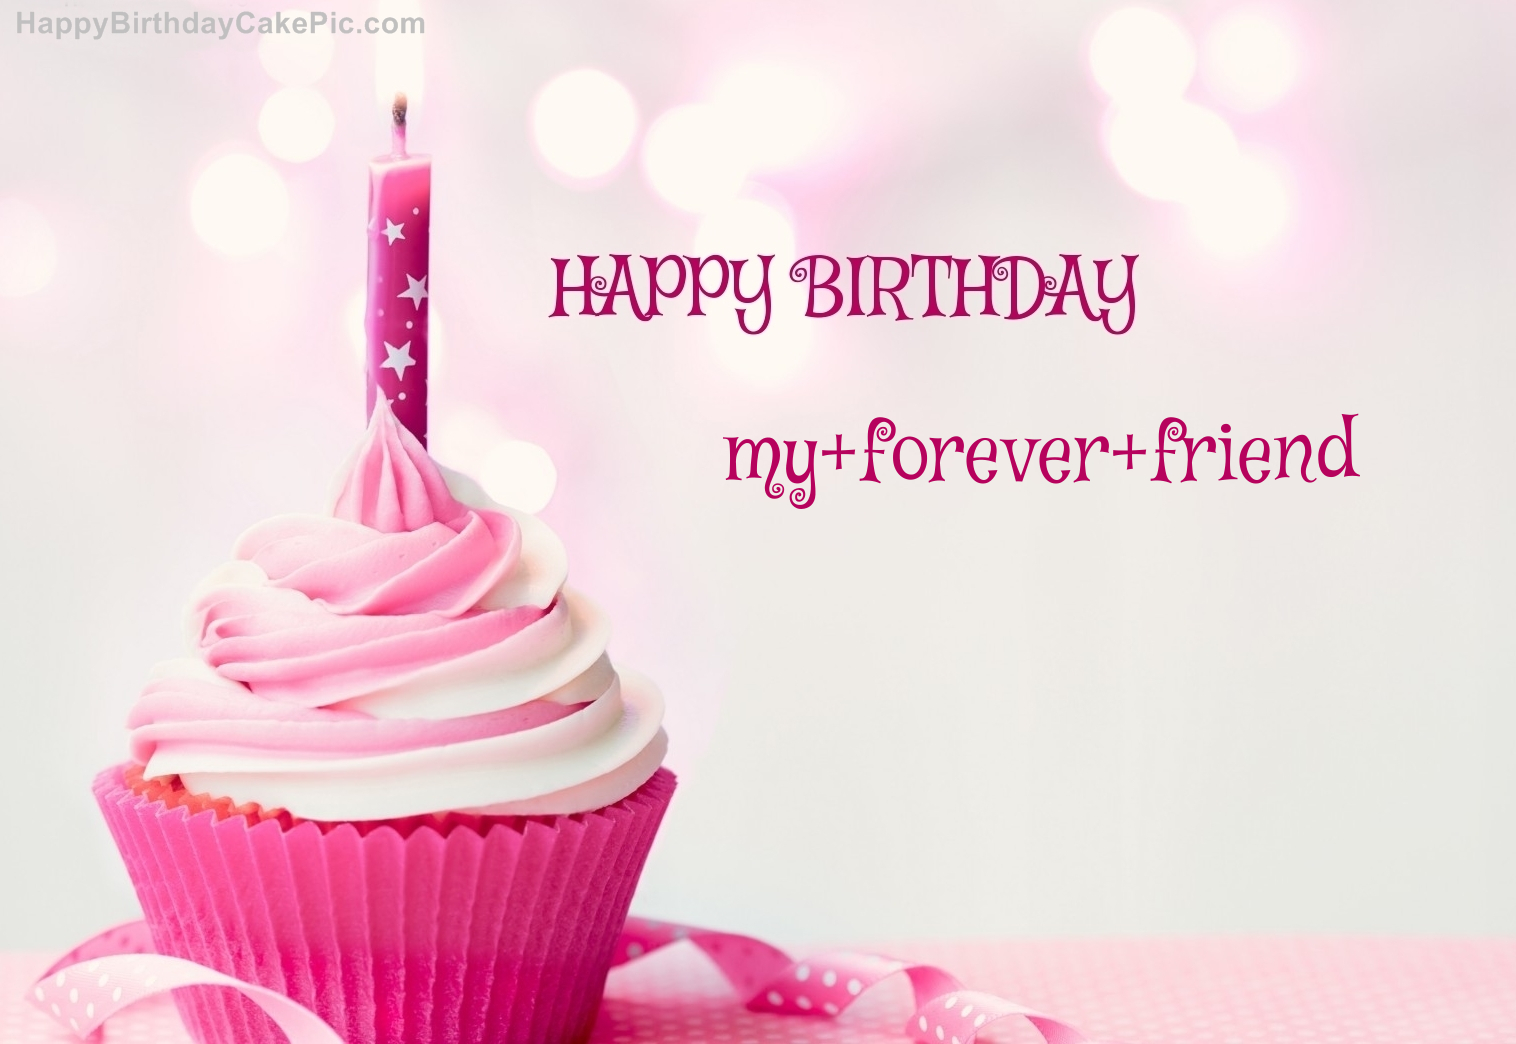 Happy Birthday Cupcake Candle Pink Cake For My Forever Friend